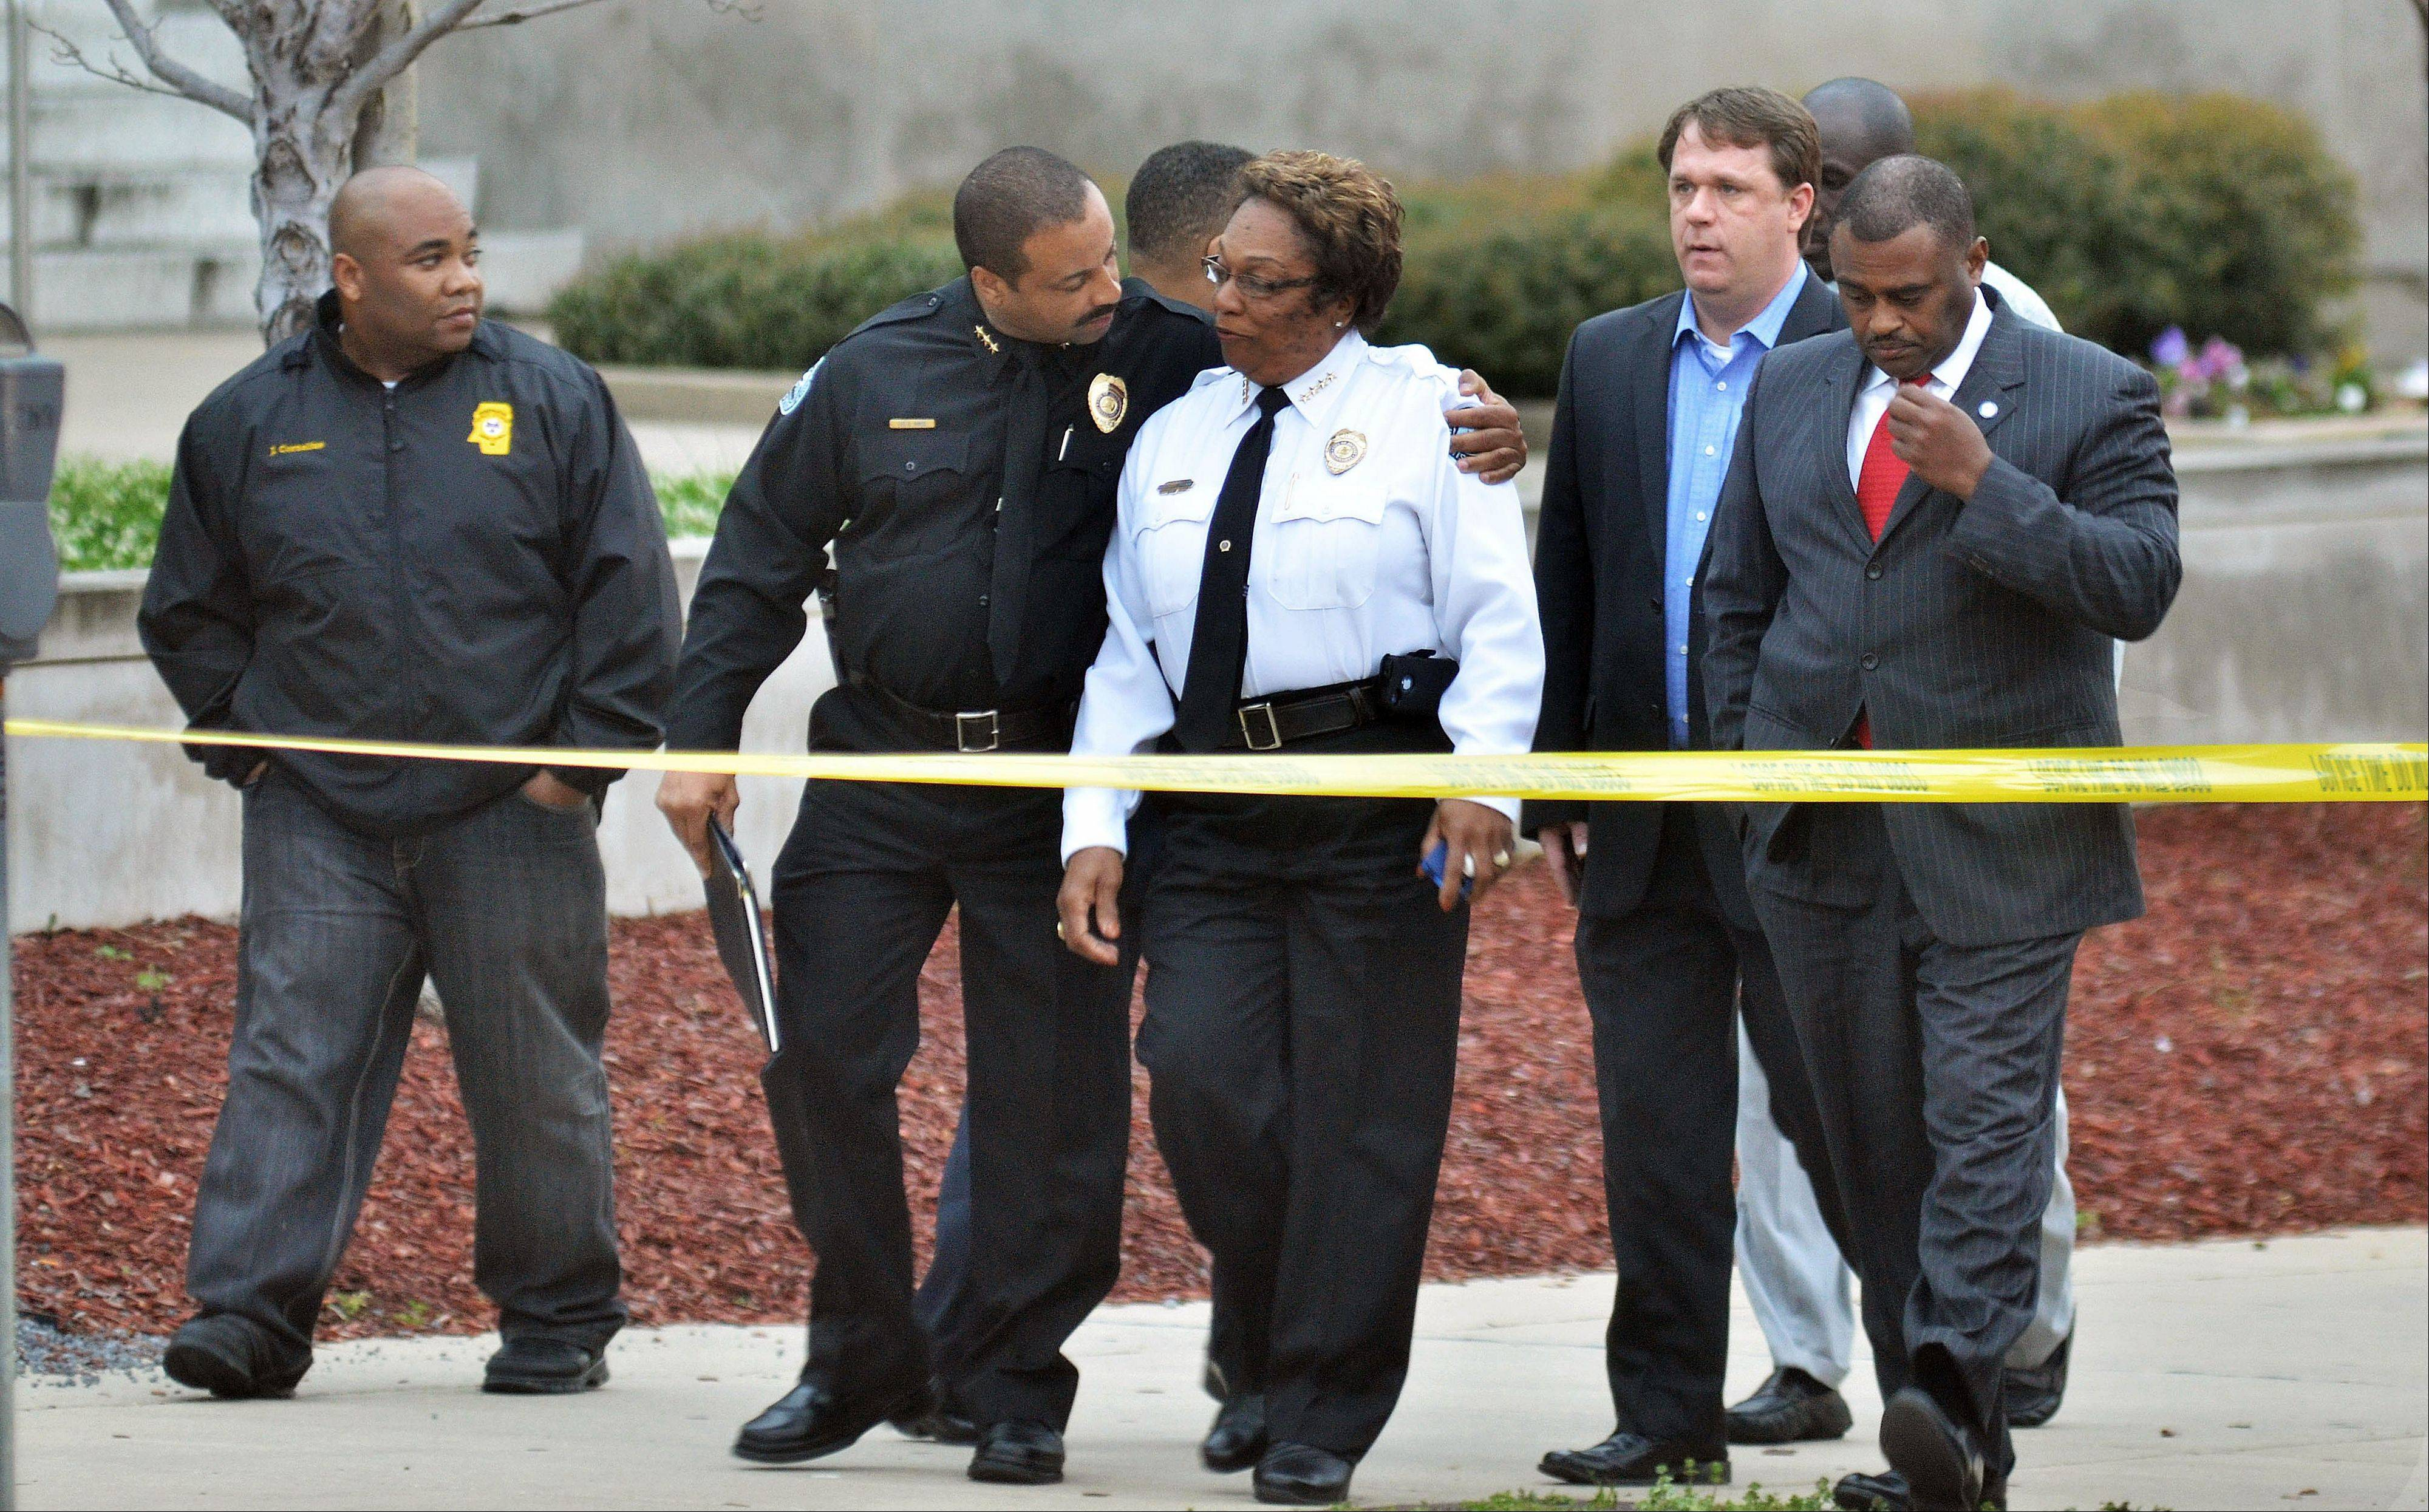 Jackson, Miss. Assistant Chief Lee Vance, center left, comforts Chief Rebecca Coleman, center right, Thursday, April, 4, 2013, after detective Eric Smith was shot and killed inside the Jackson Police Department. A suspect was also killed.